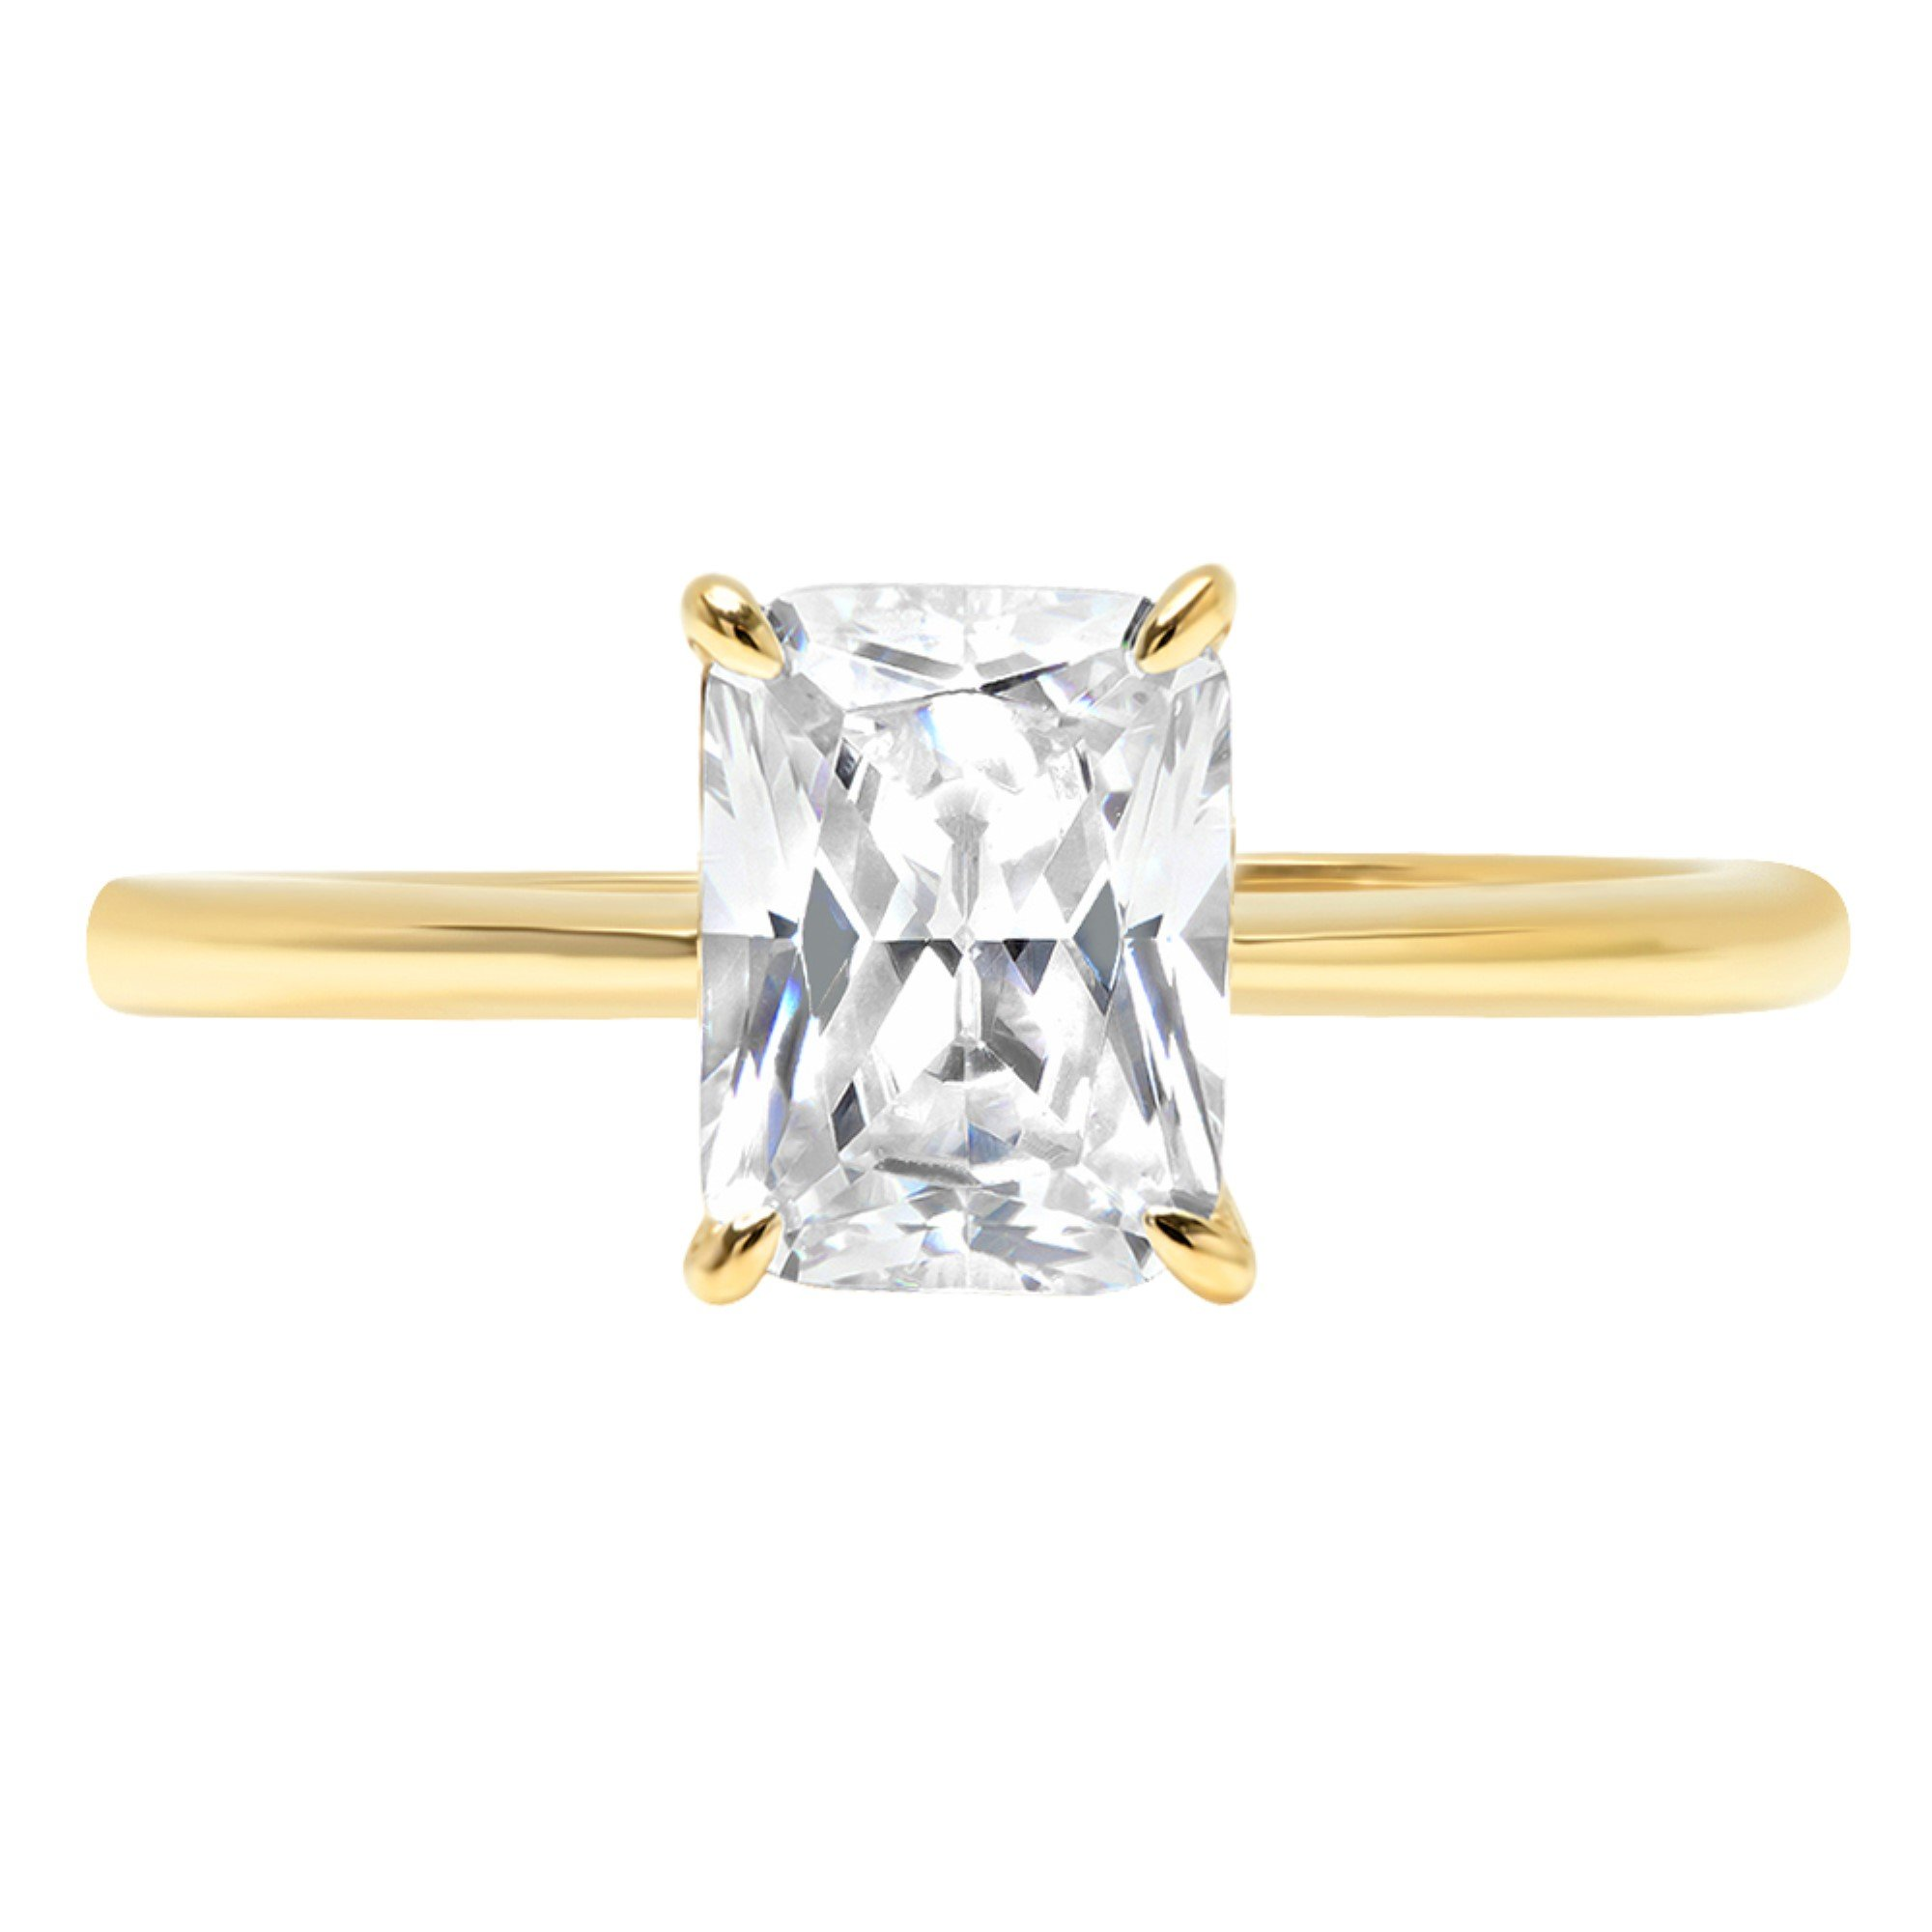 2.45ct Brilliant Radiant Cut Solitaire Highest Quality Moissanite Ideal D 4-Prong Statement Ring in Solid Real 14k Yellow Gold for Women